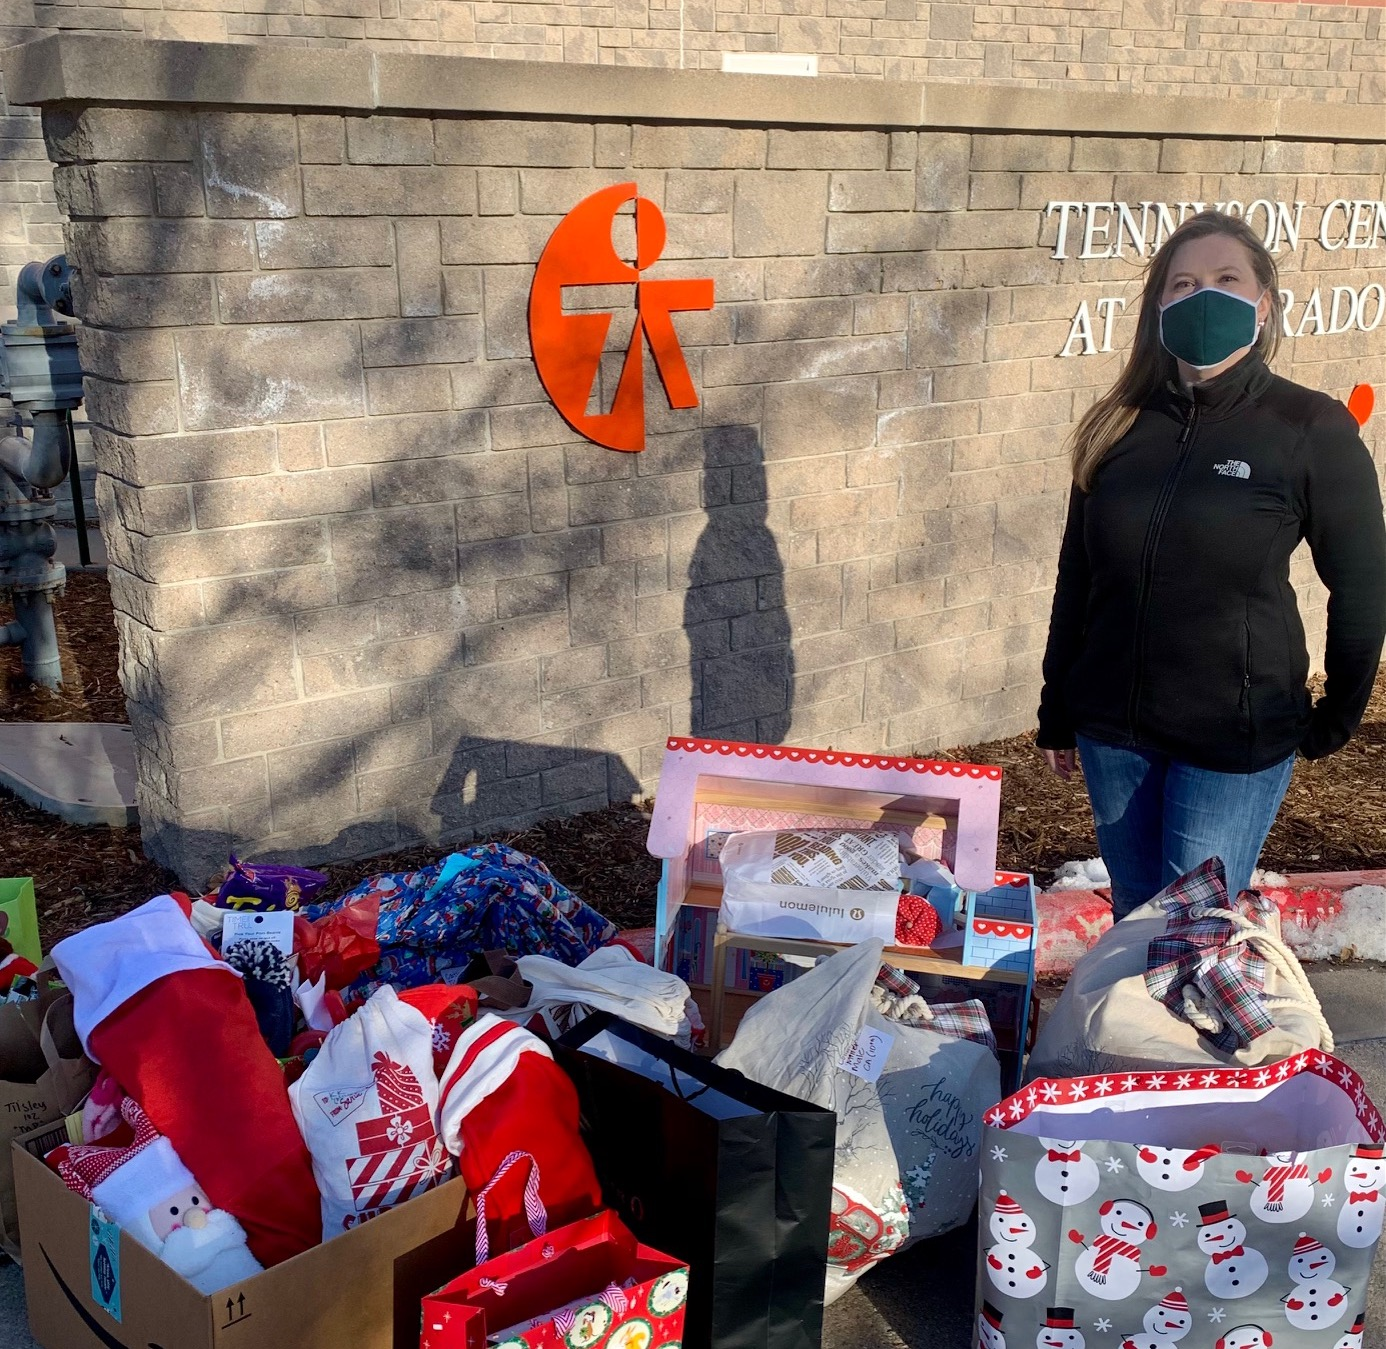 holiday stockings donated to Tennyson Center for Children